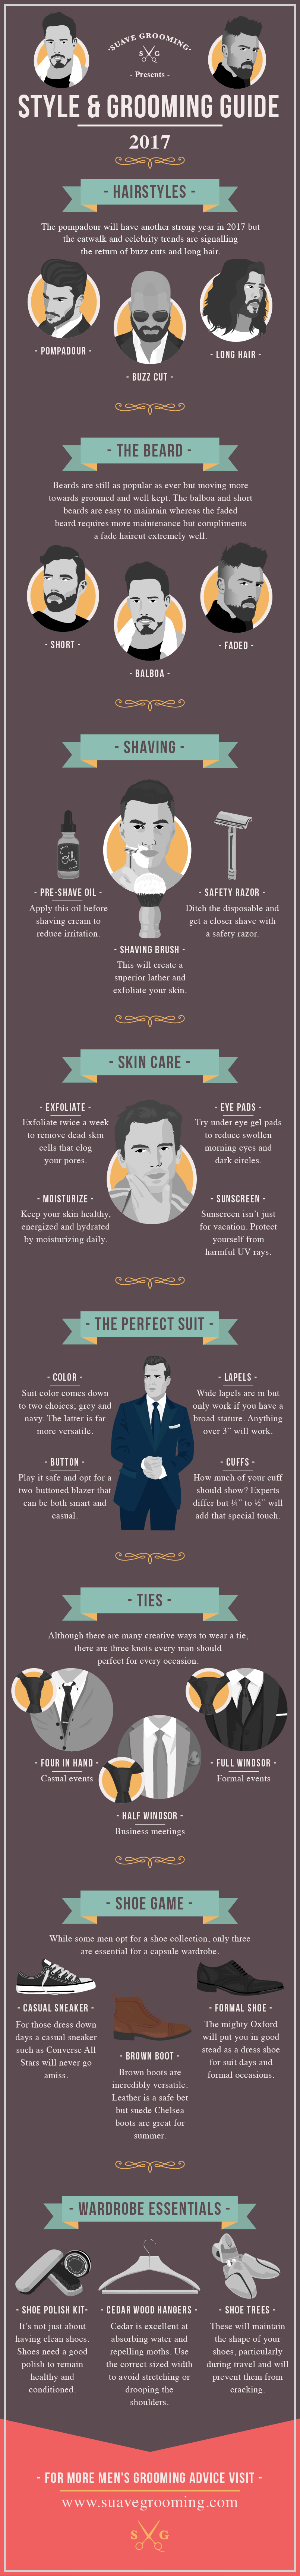 Suave Grooming's Style & Grooming Guide 2017